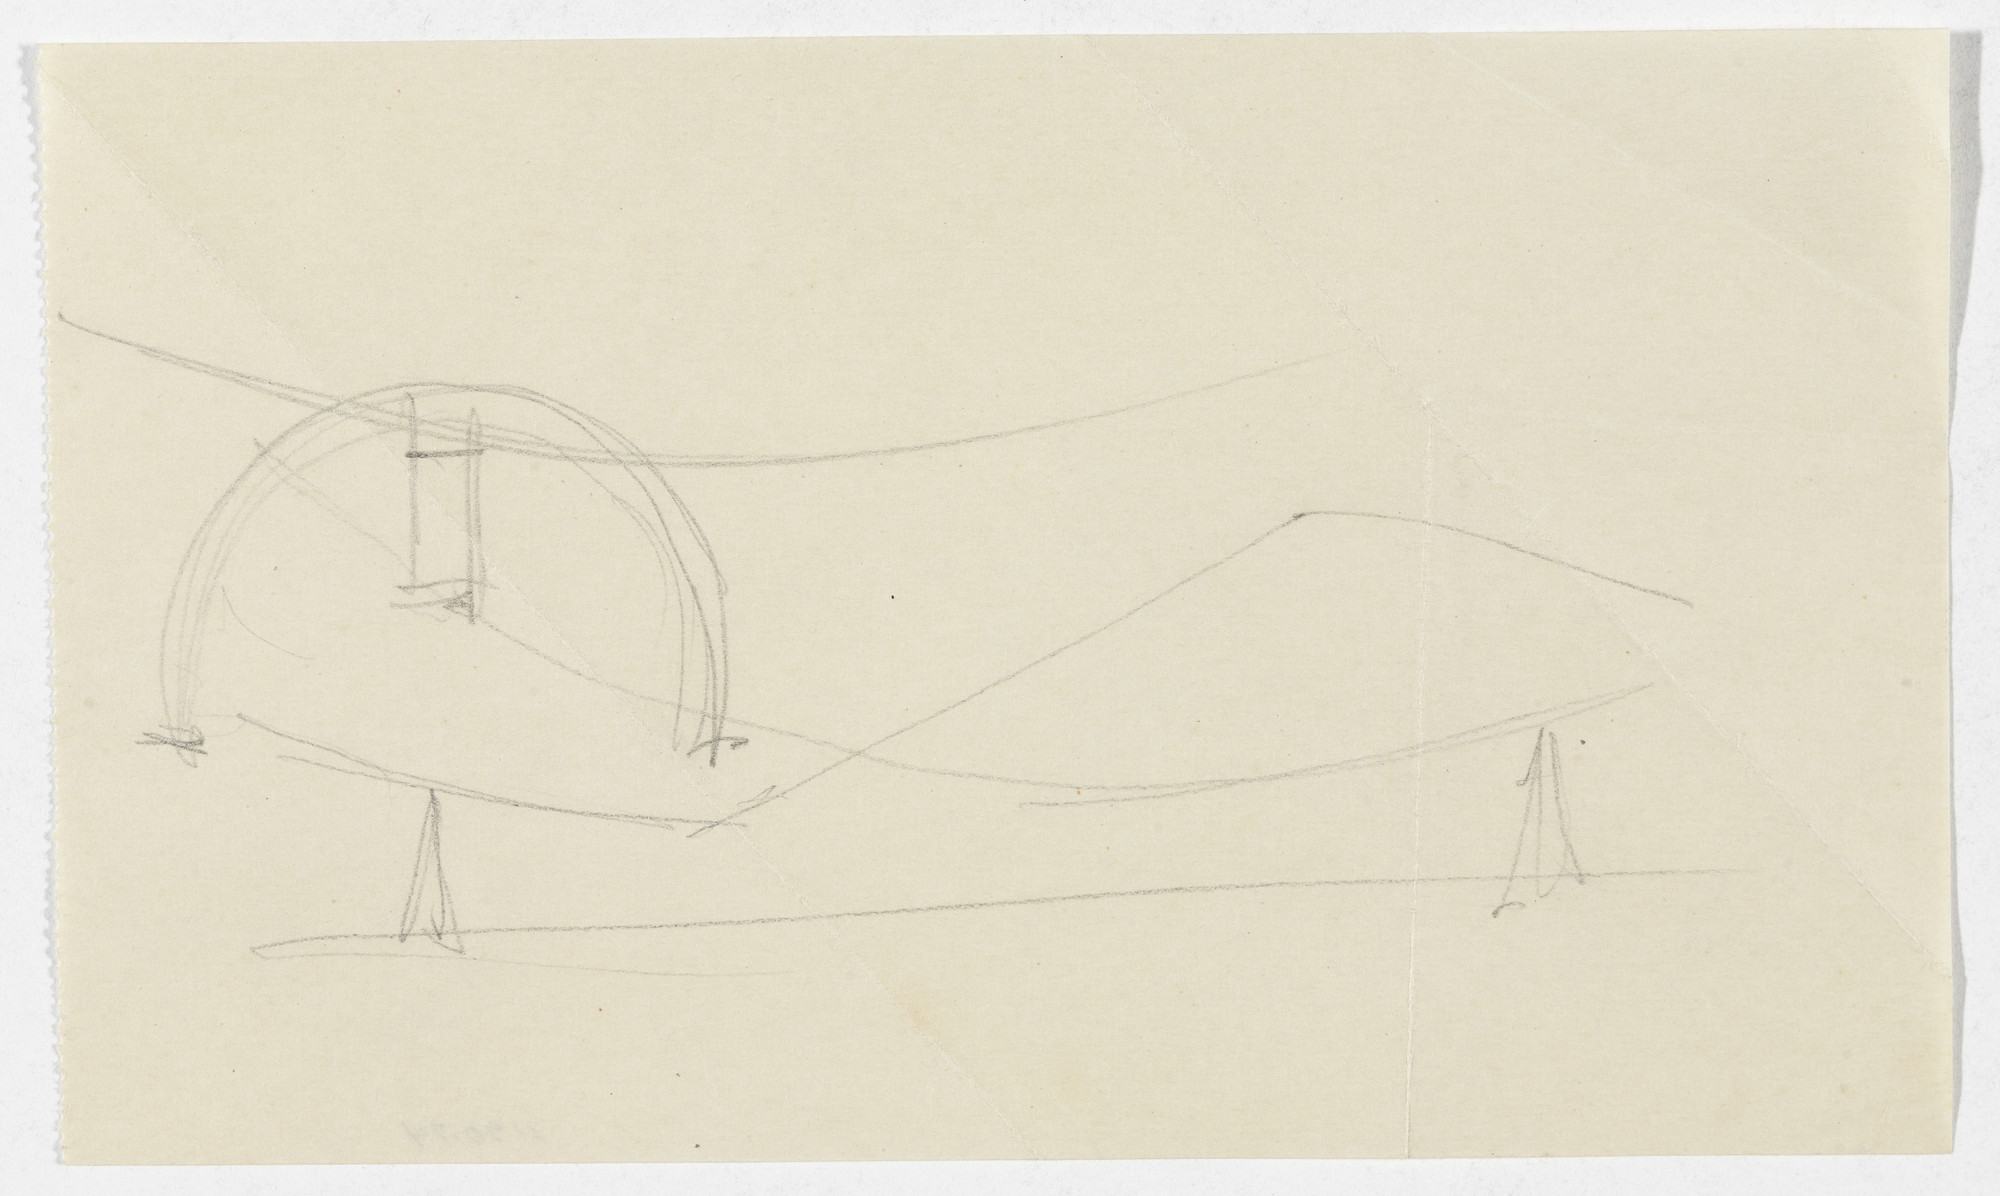 Ludwig Mies van der Rohe. Reclining Chair without Arms (Elevation sketches). 1934